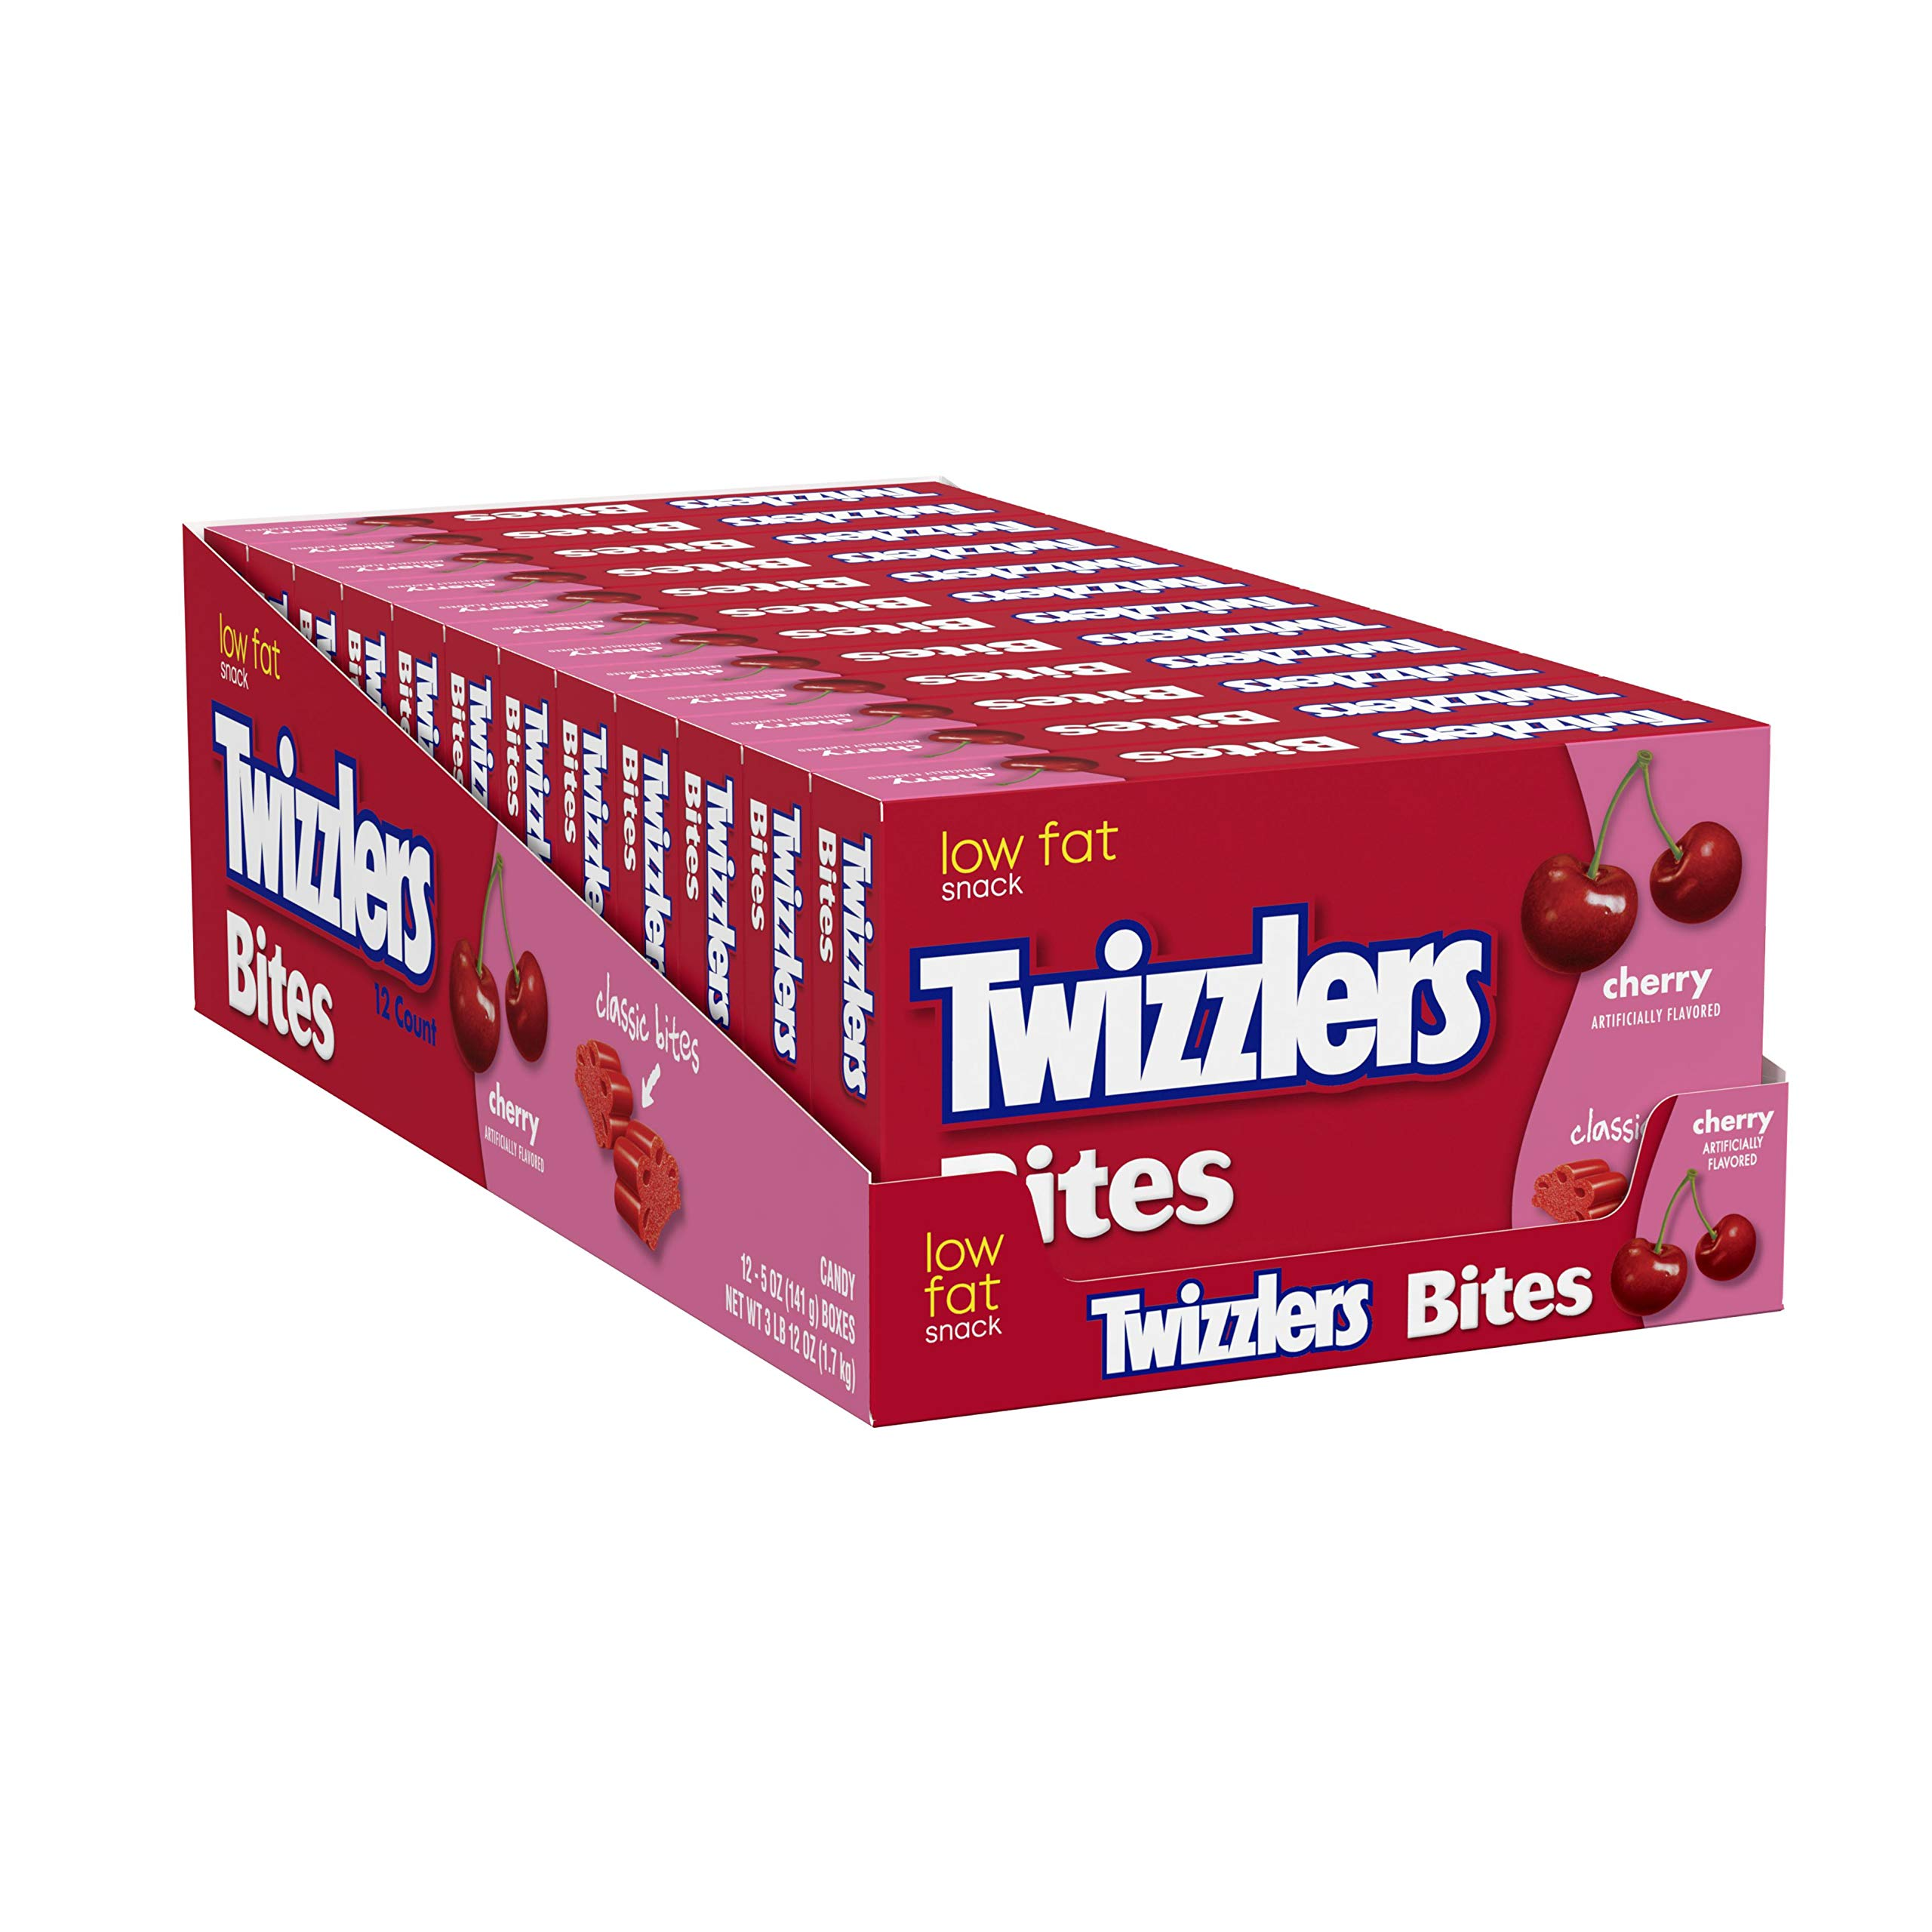 TWIZZLERS Licorice Candy, Cherry, Bites, 5 Ounce (Pack of 12) by Twizzlers